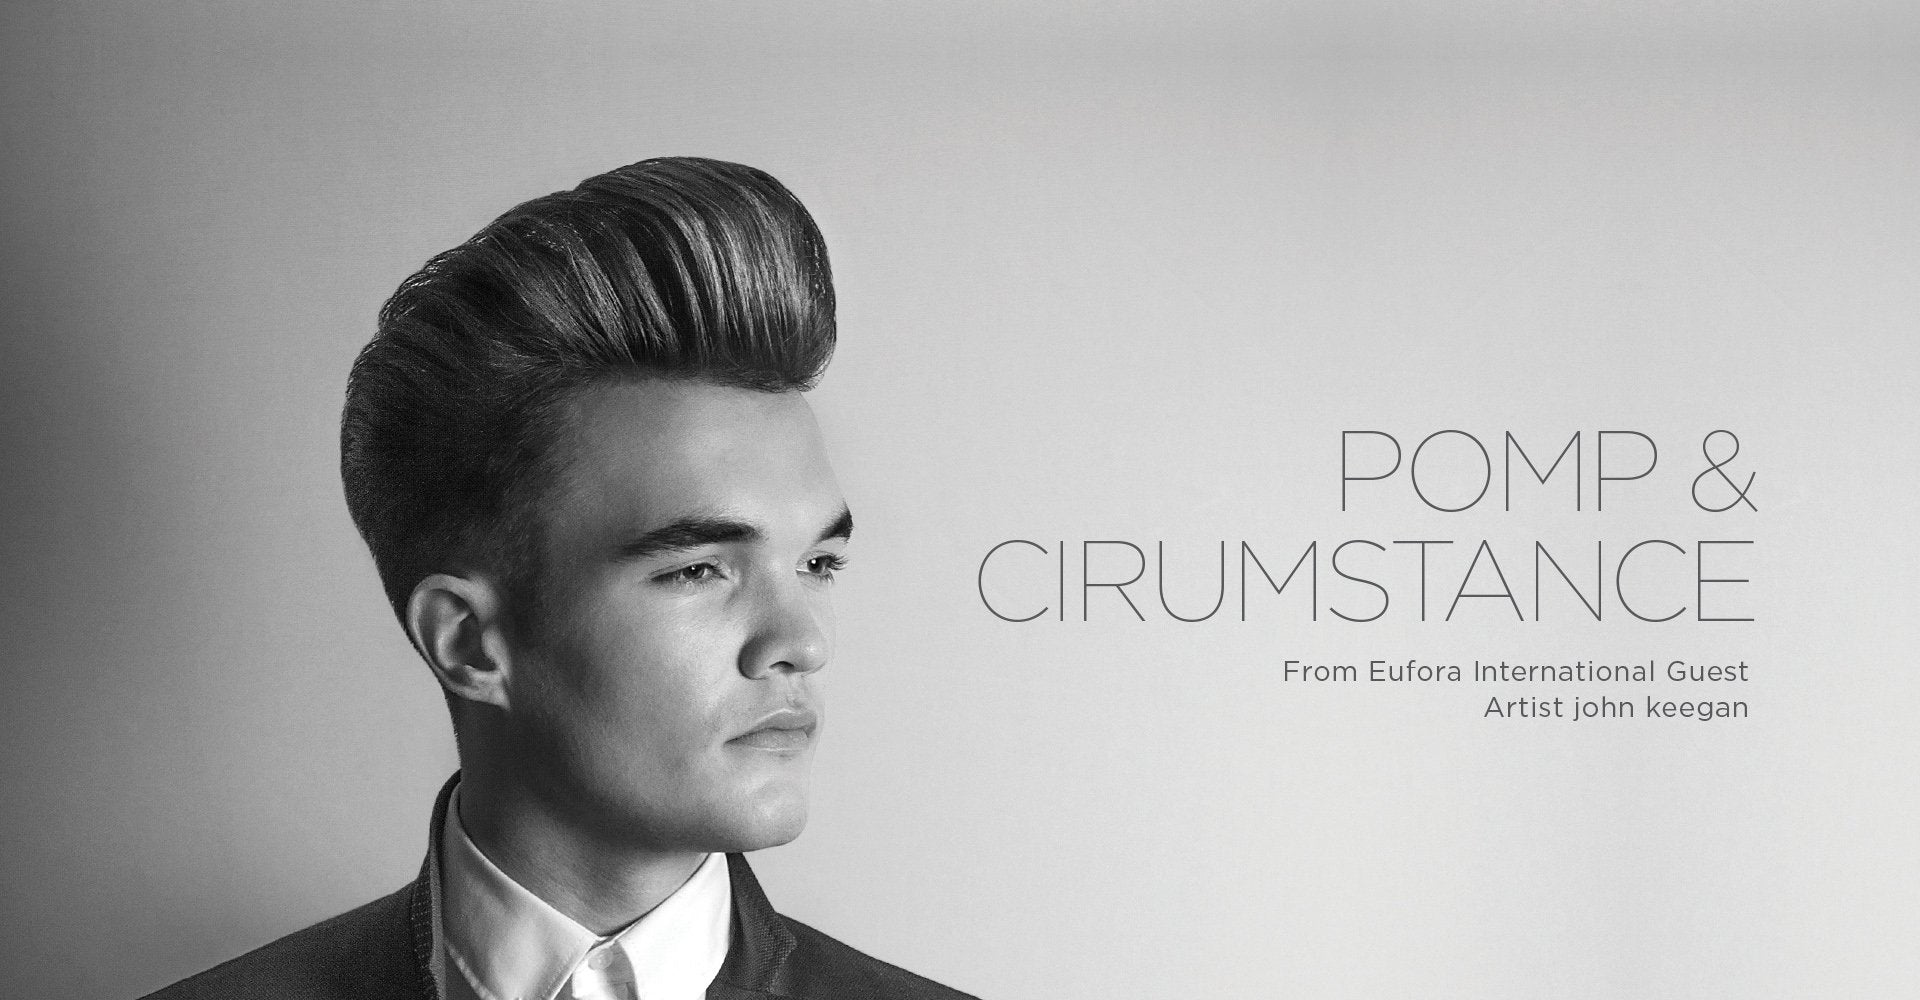 Pomp & Circumstance - From Eufora International Guest Artist John Keegan